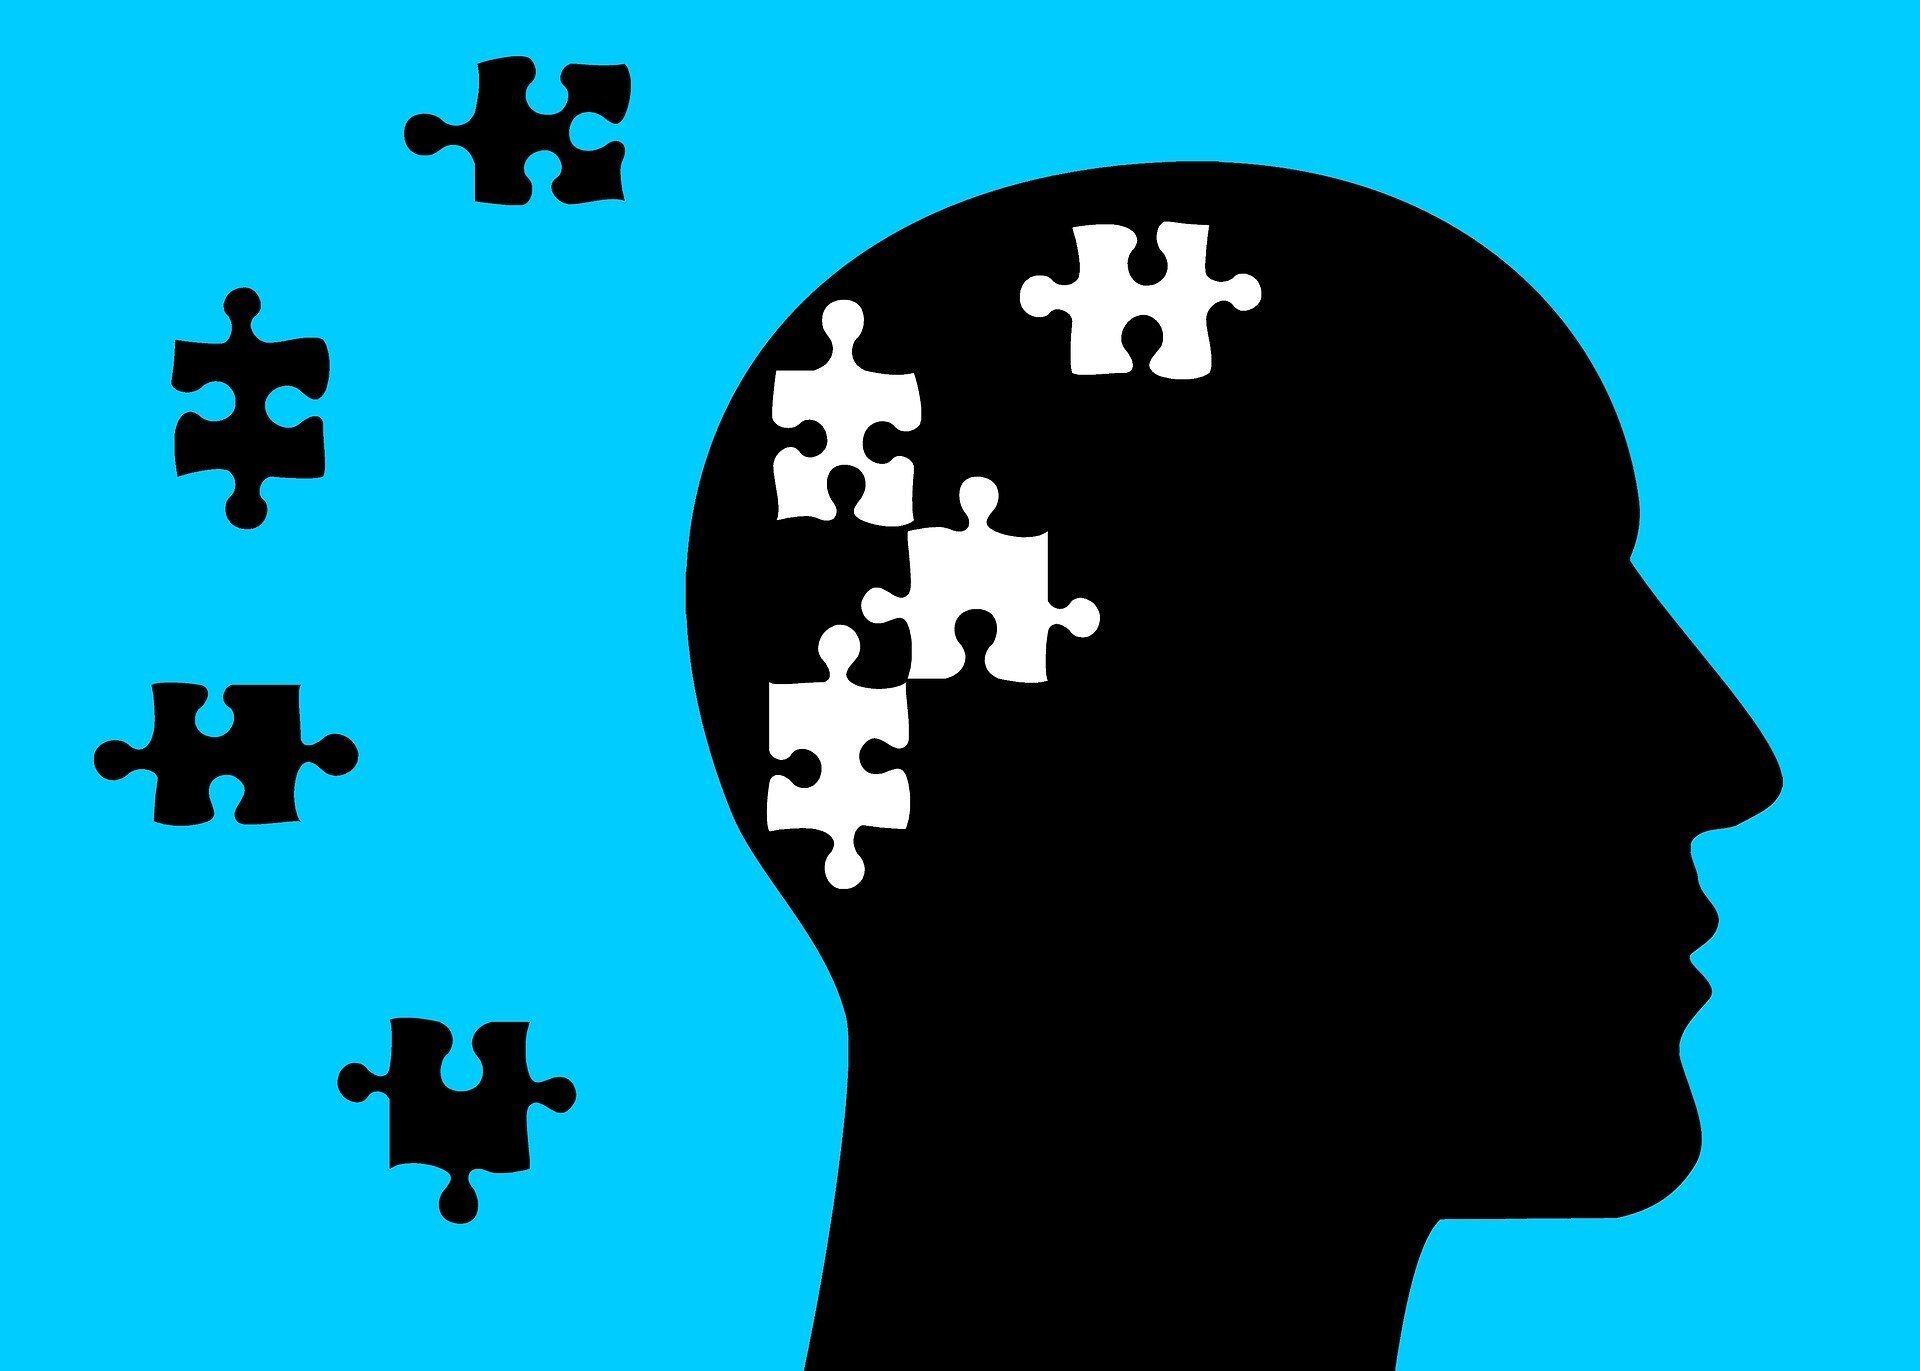 New model to further understand causes of Alzheimer's disease